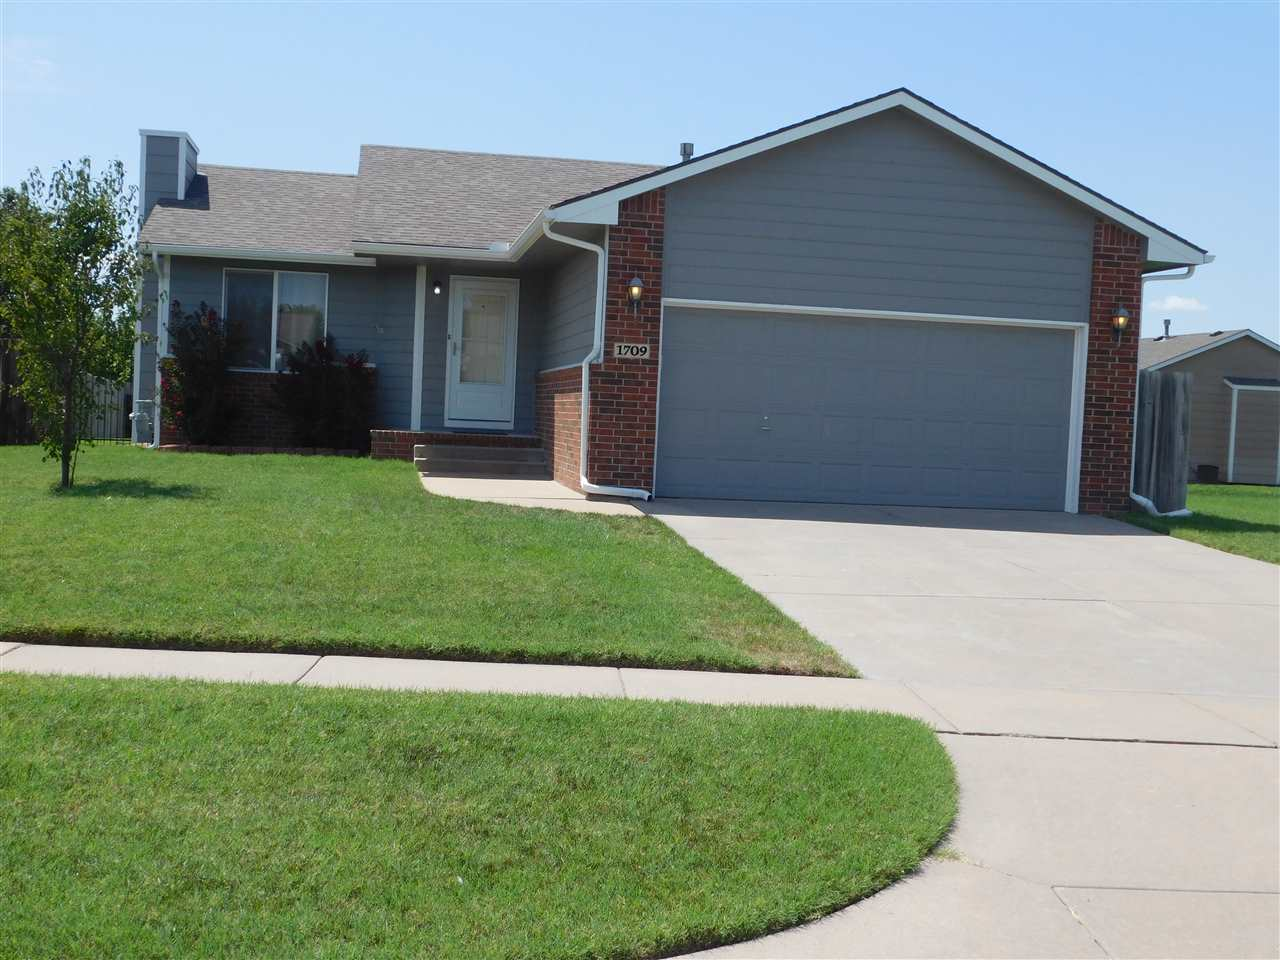 Are you looking for a well maintained home with pride of ownership?  Then this is it!  Highly sought